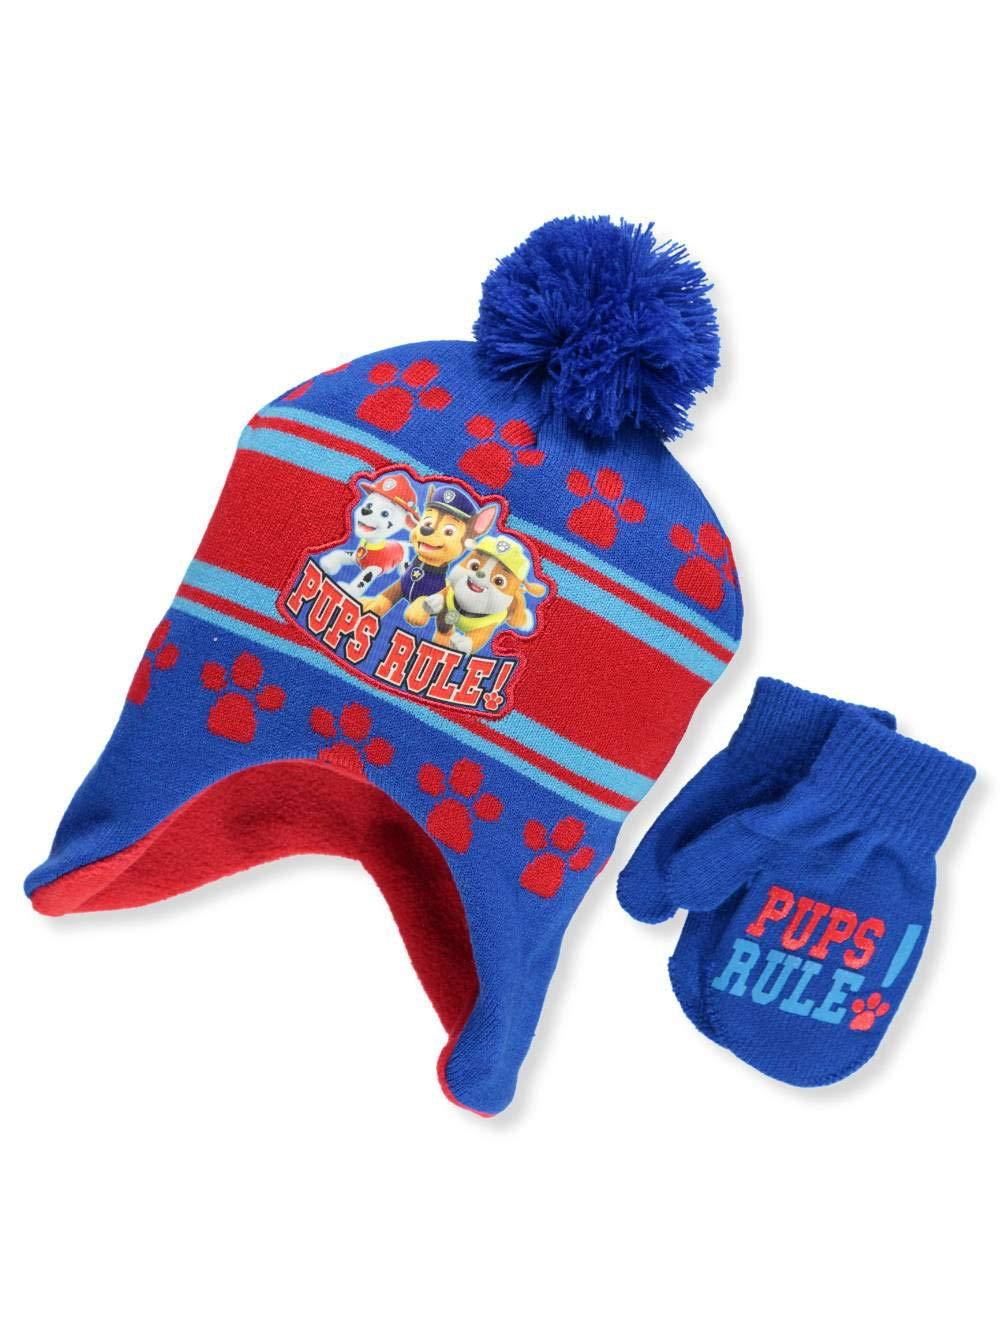 Paw Patrol Big Boys' Beanie & Mittens Set - blue/red, one size